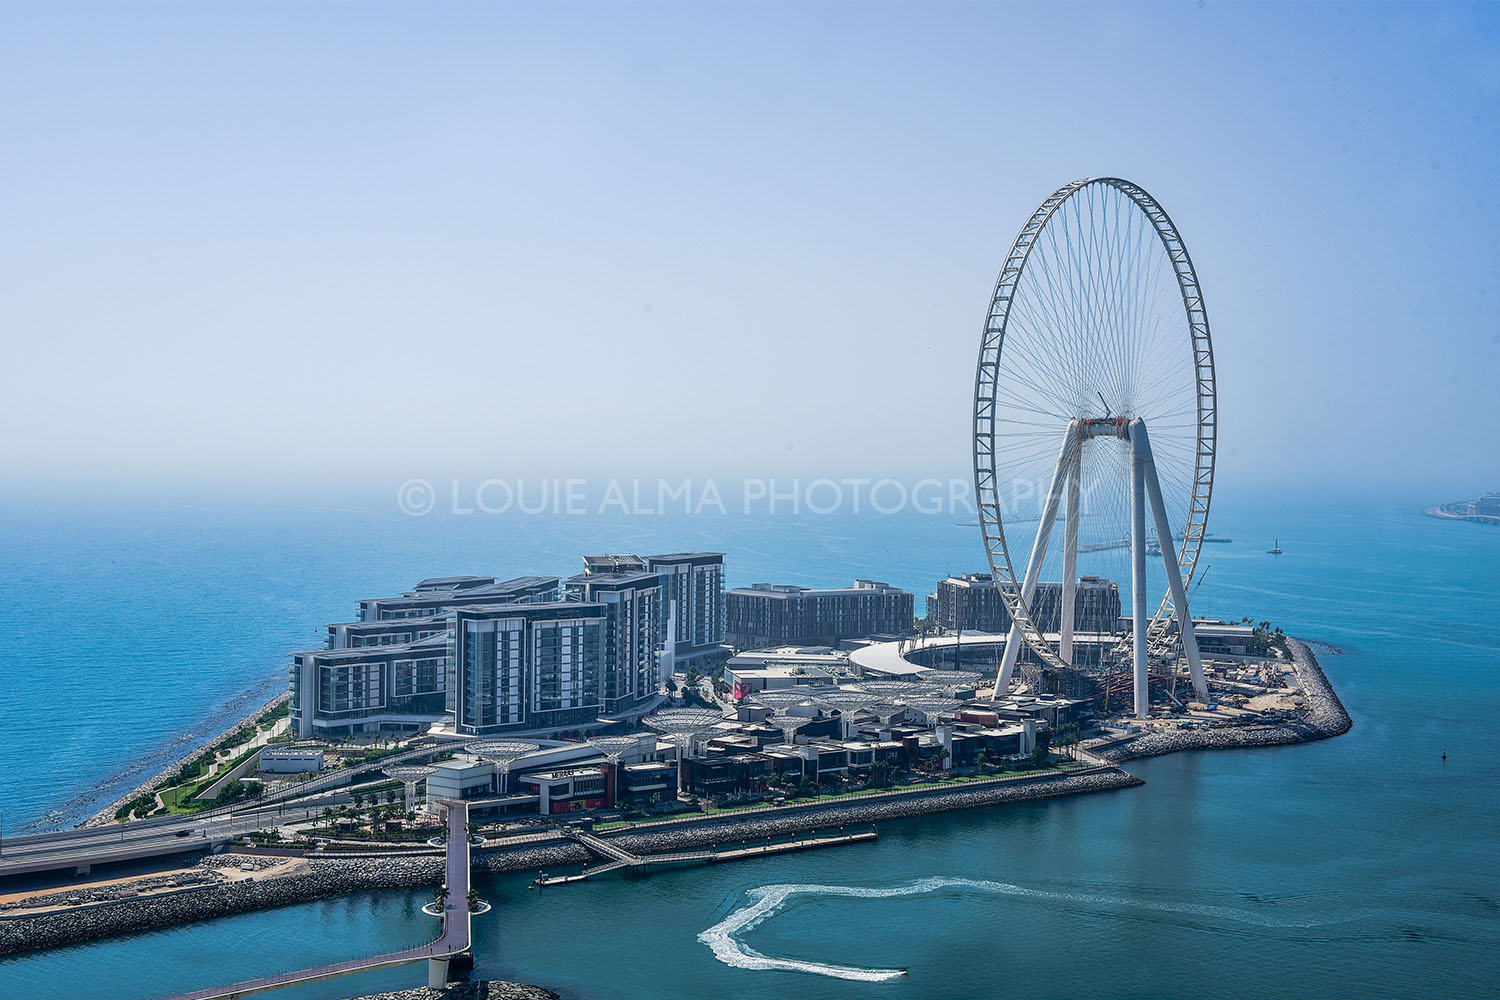 Louie Alma - Landscape Photography, Bluewaters, Dubai